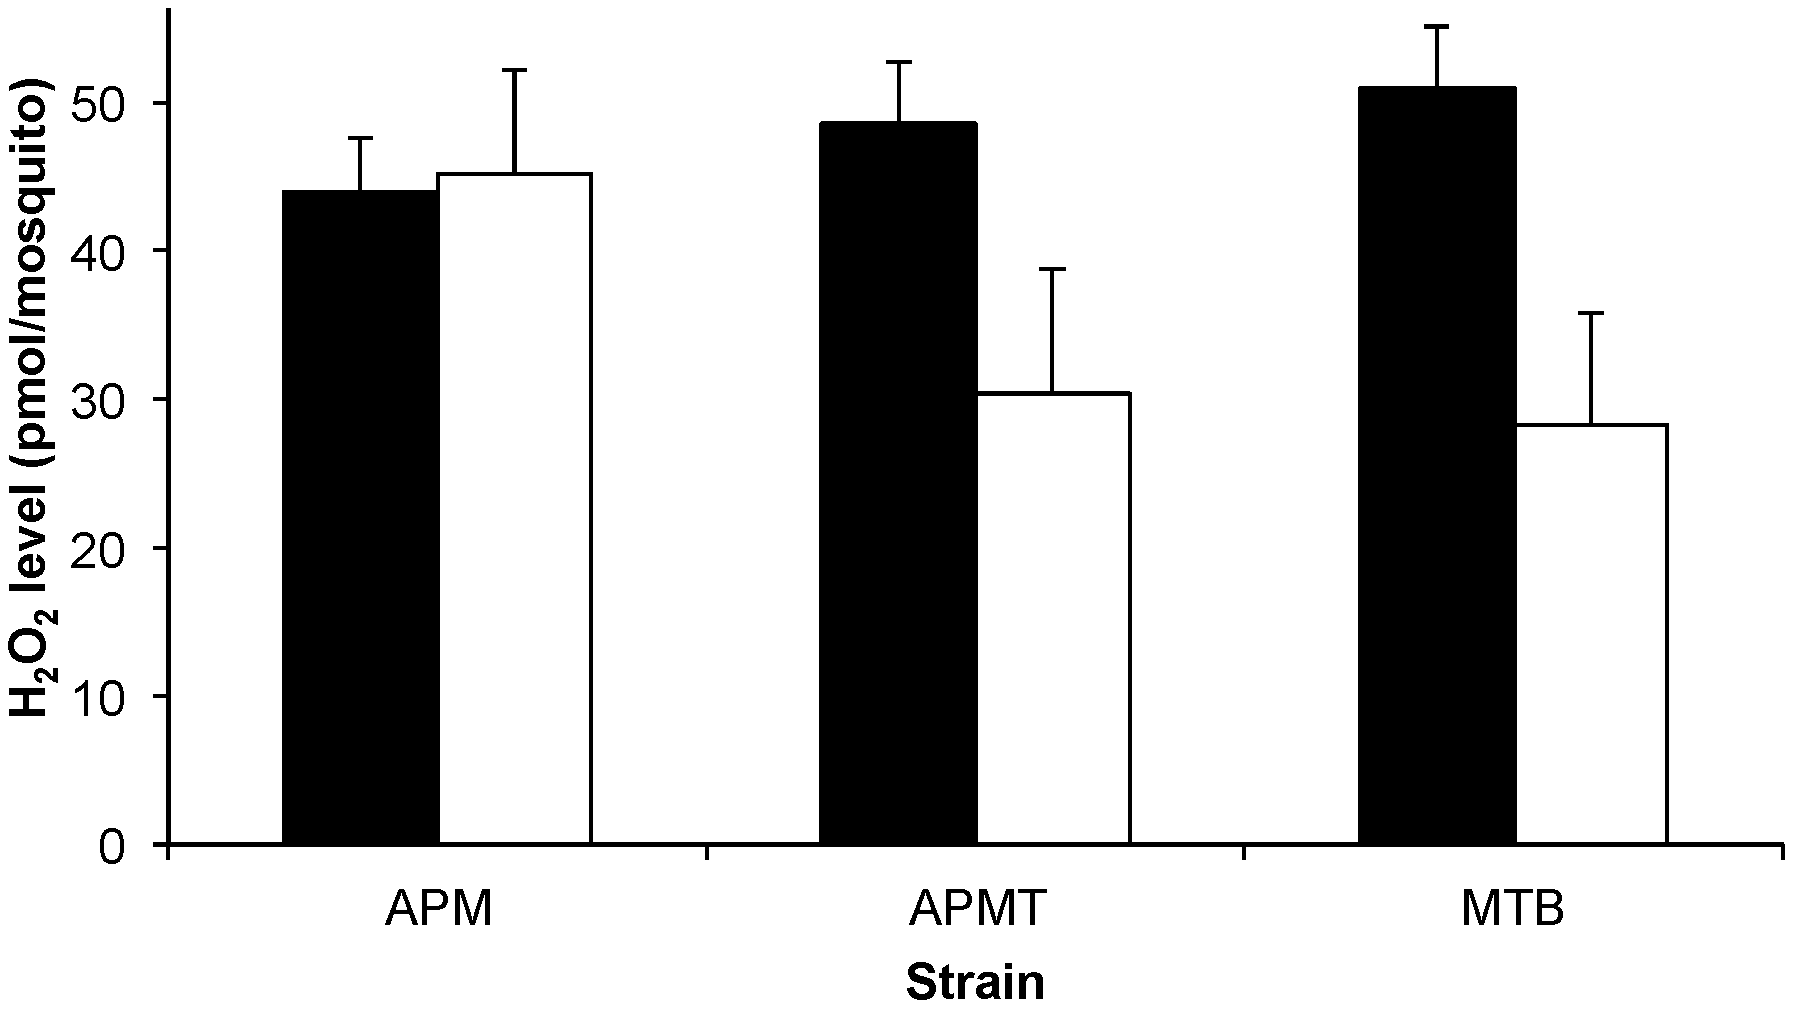 ROS levels in <i>Ae. polynesiensis</i> strains.